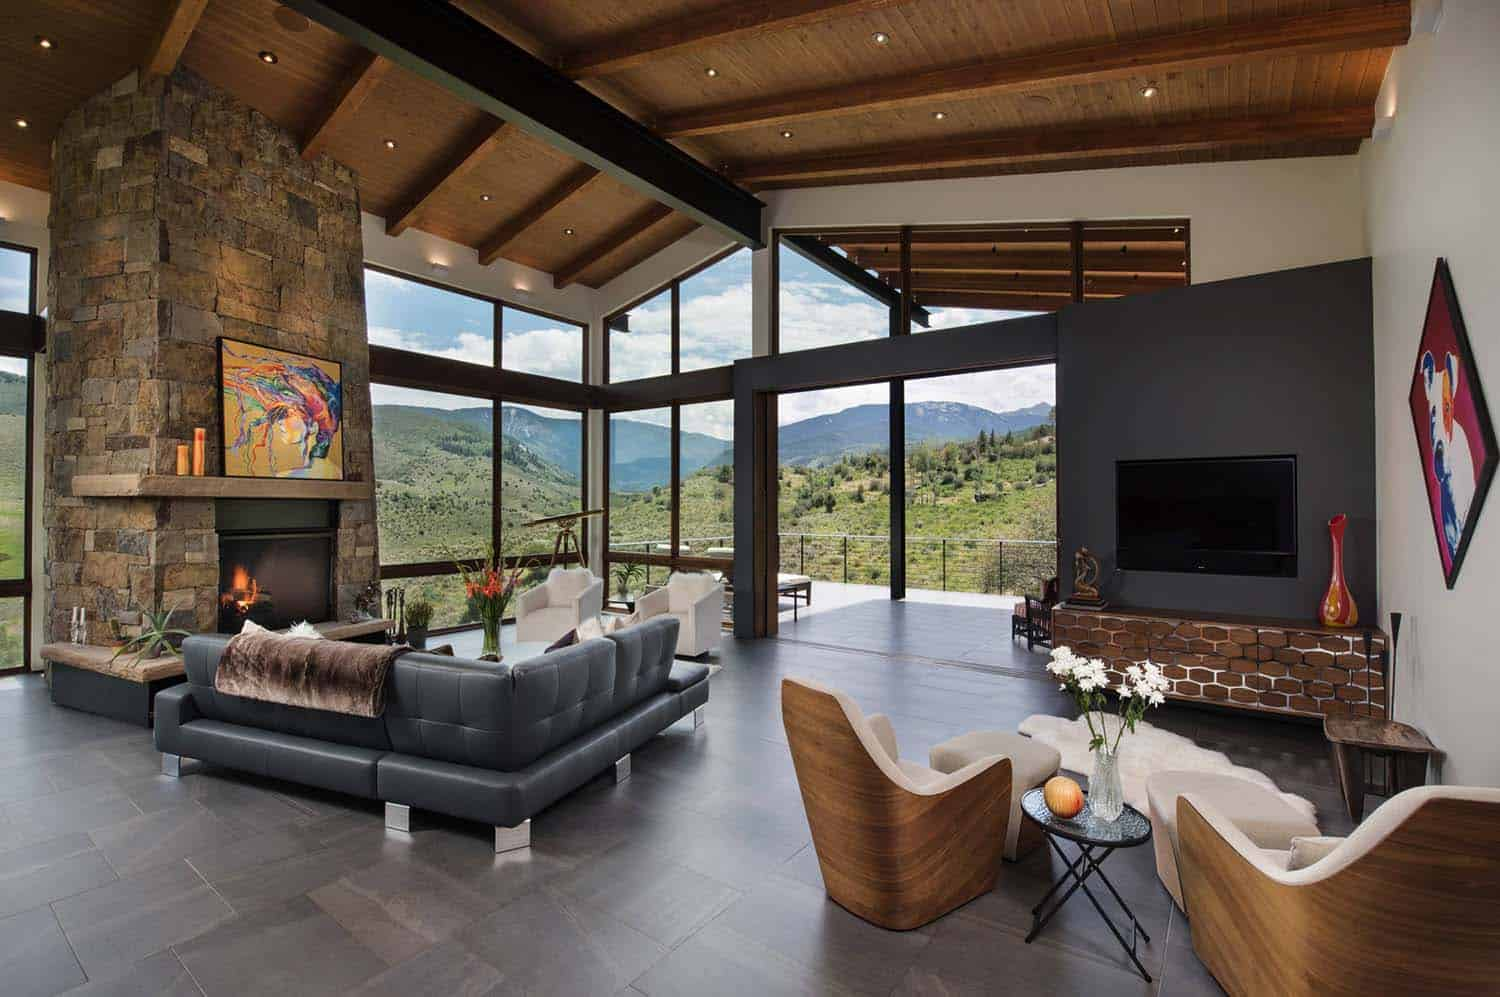 Contemporary Mountain Home Renovation-Berglund Architects-07-1 Kindesign